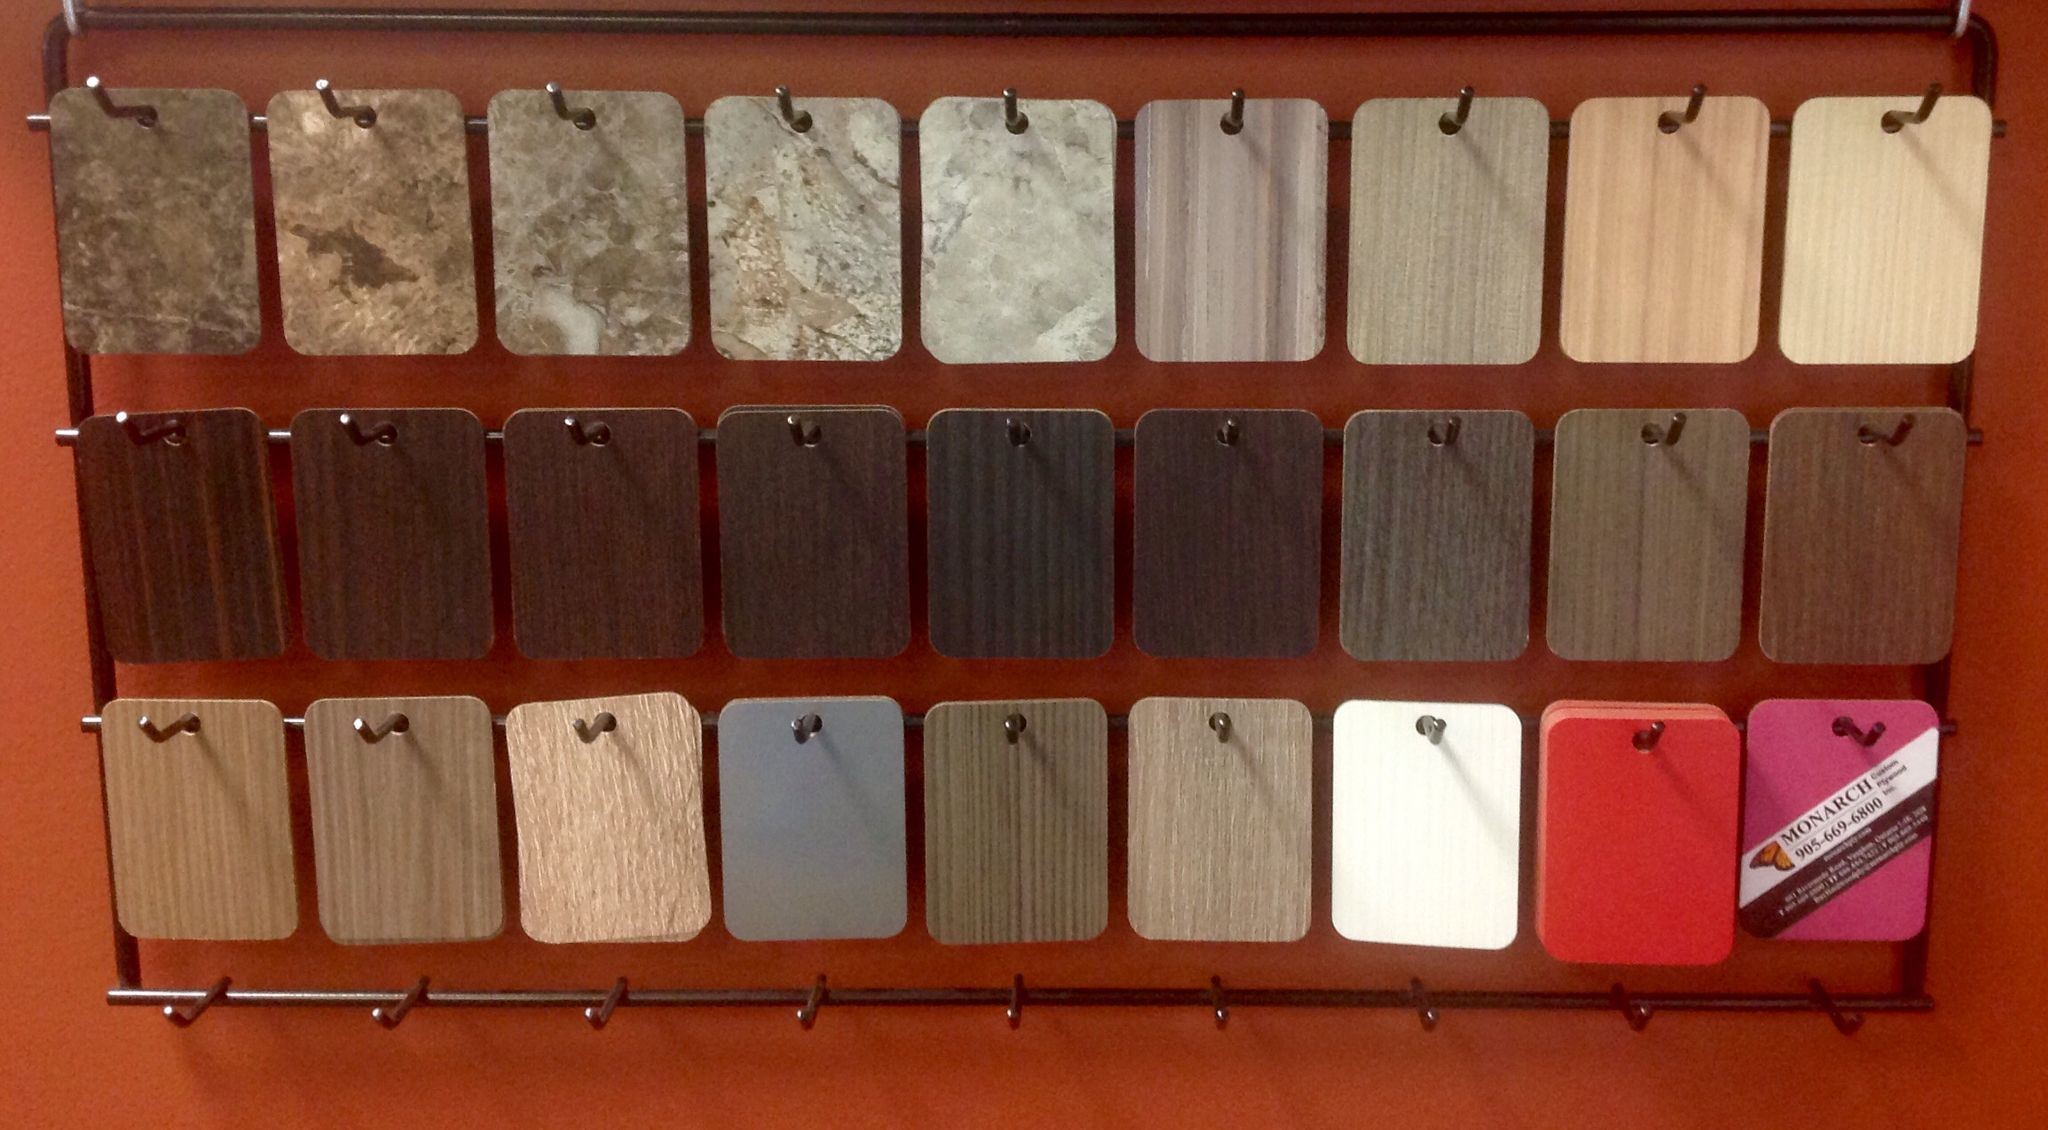 New Decotone Surfaces Metals Hpl Designs Added To Decotone Surfaces Decorative Laminates Collections In Ontario Cana Innovation Design Wall Board Laminates